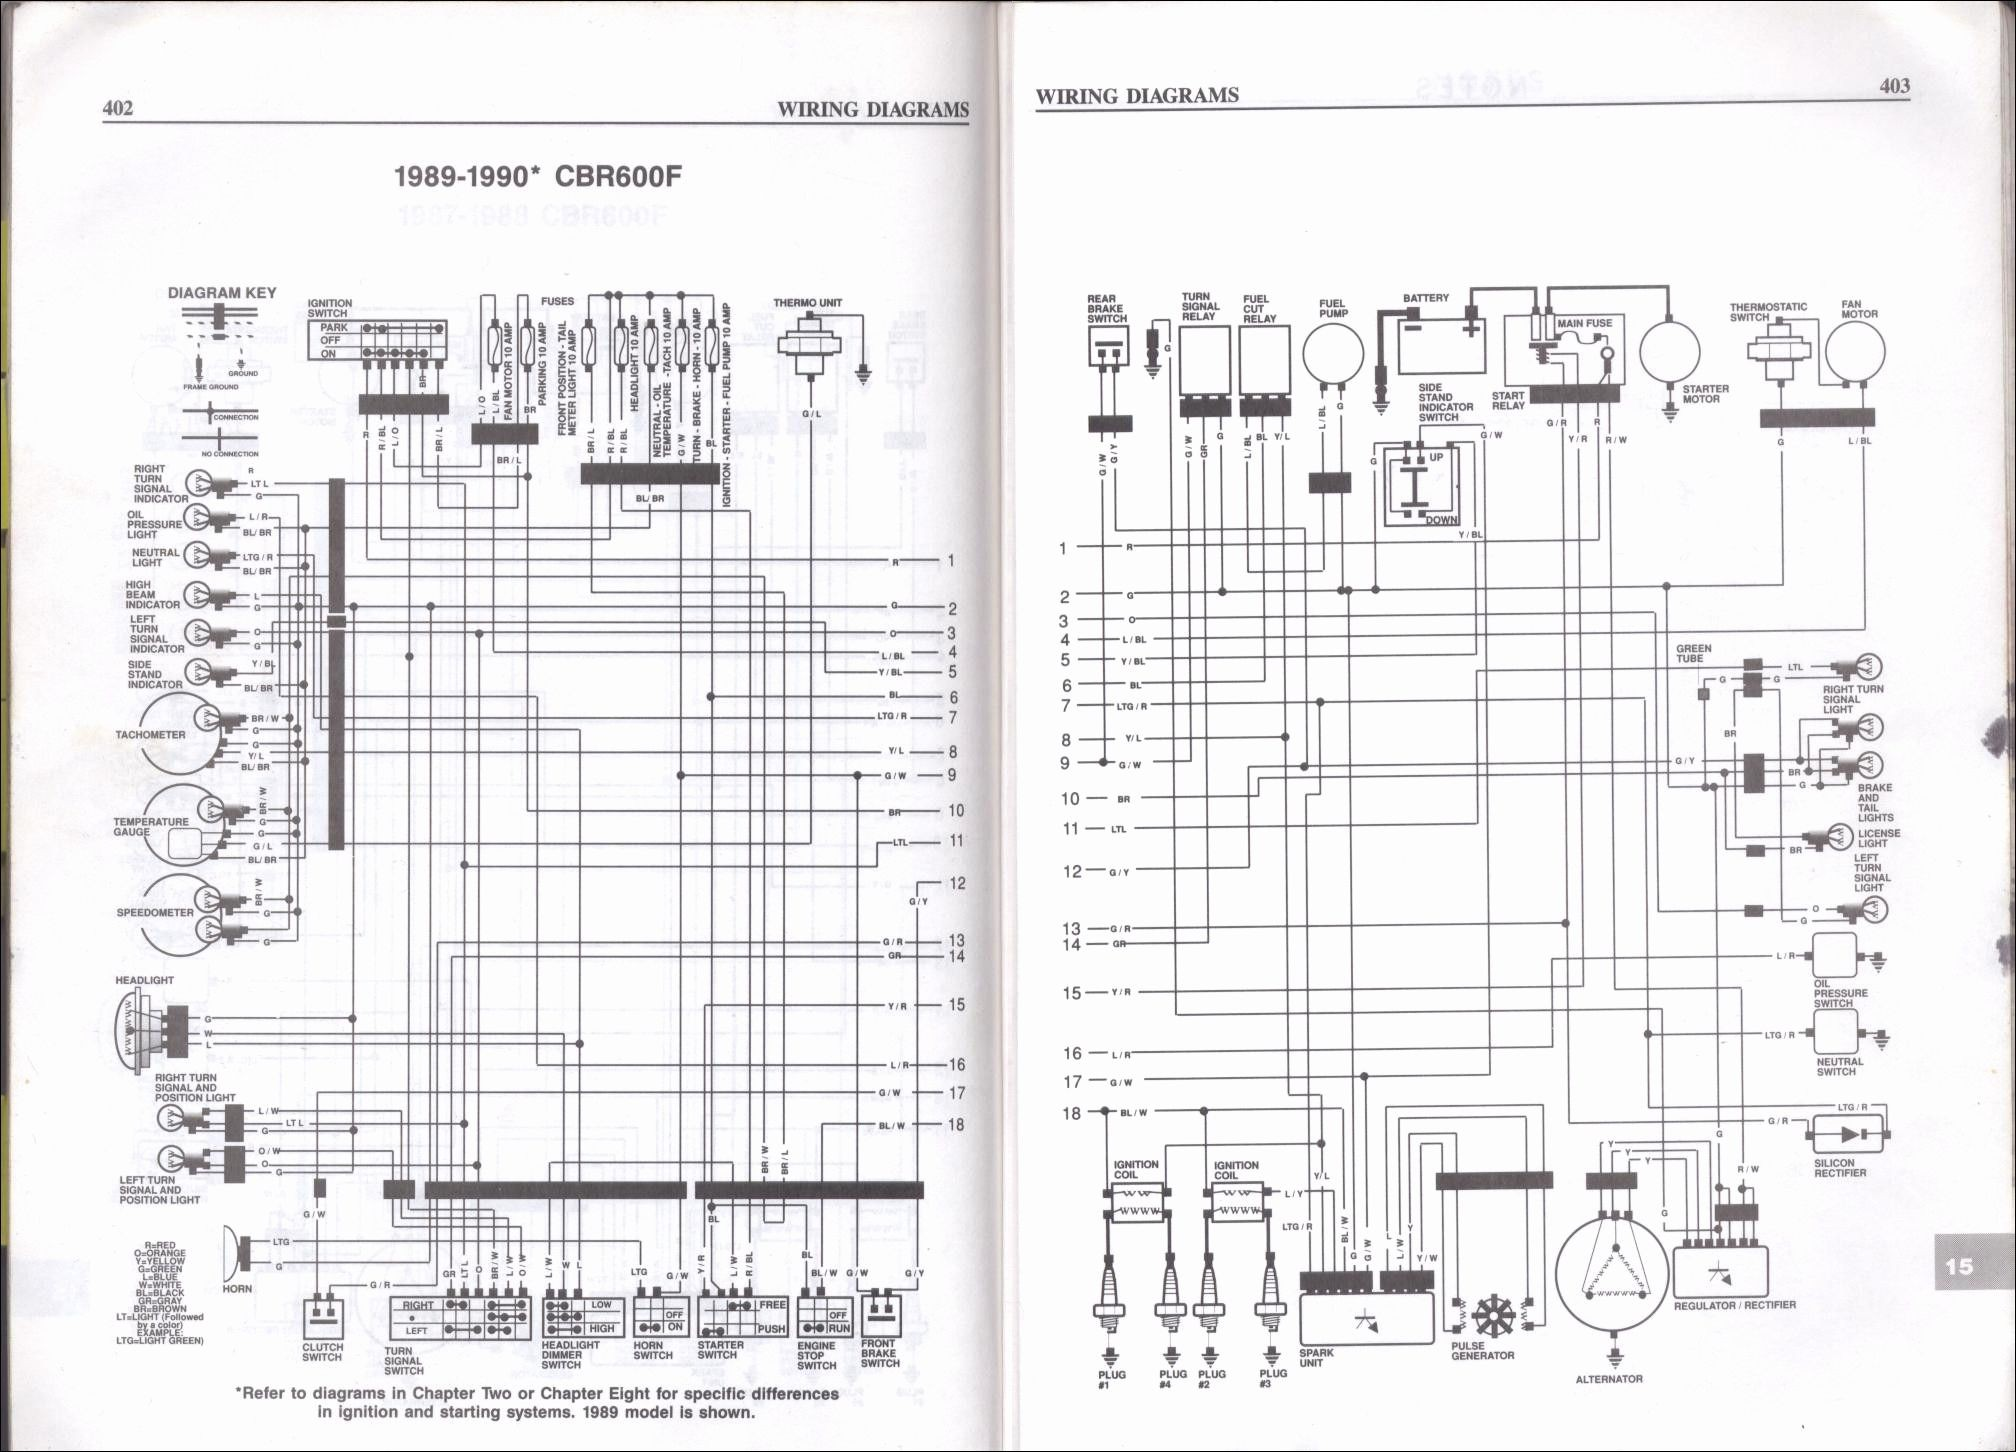 1995 ford F150 Electric Fuel Pump Wiring Schematic Honda C70 Wiring Diagram Auto Electrical Wiring Diagram Of 1995 ford F150 Electric Fuel Pump Wiring Schematic